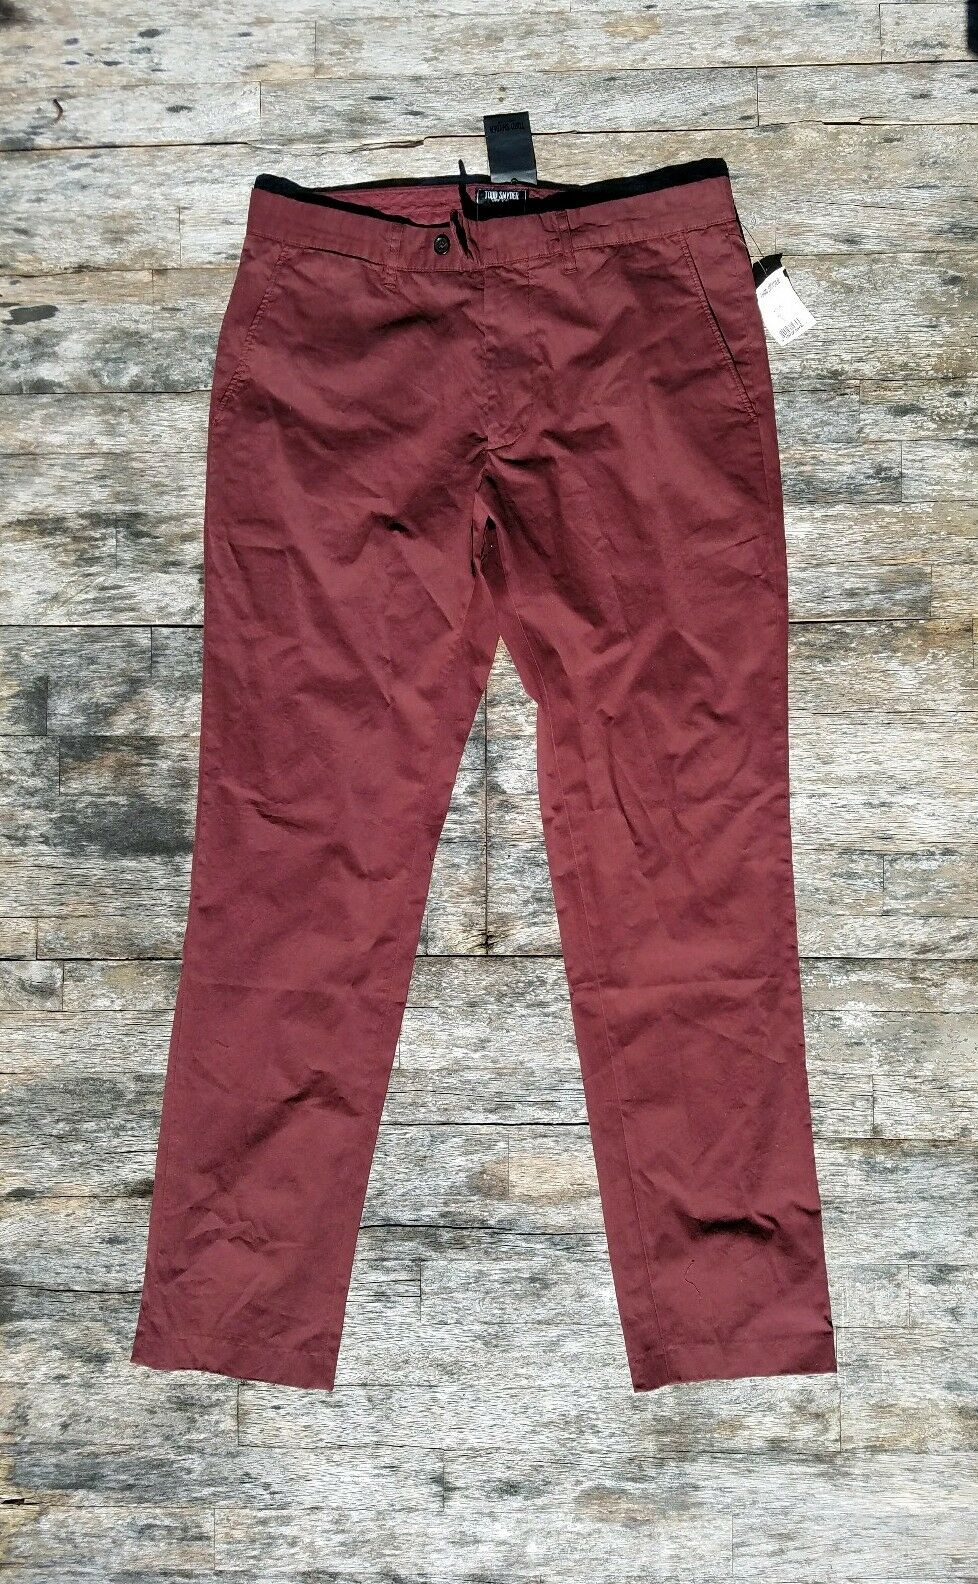 New  TODD SNYDER [31-32] Hudson Tab made in Portugal cotton twill pants